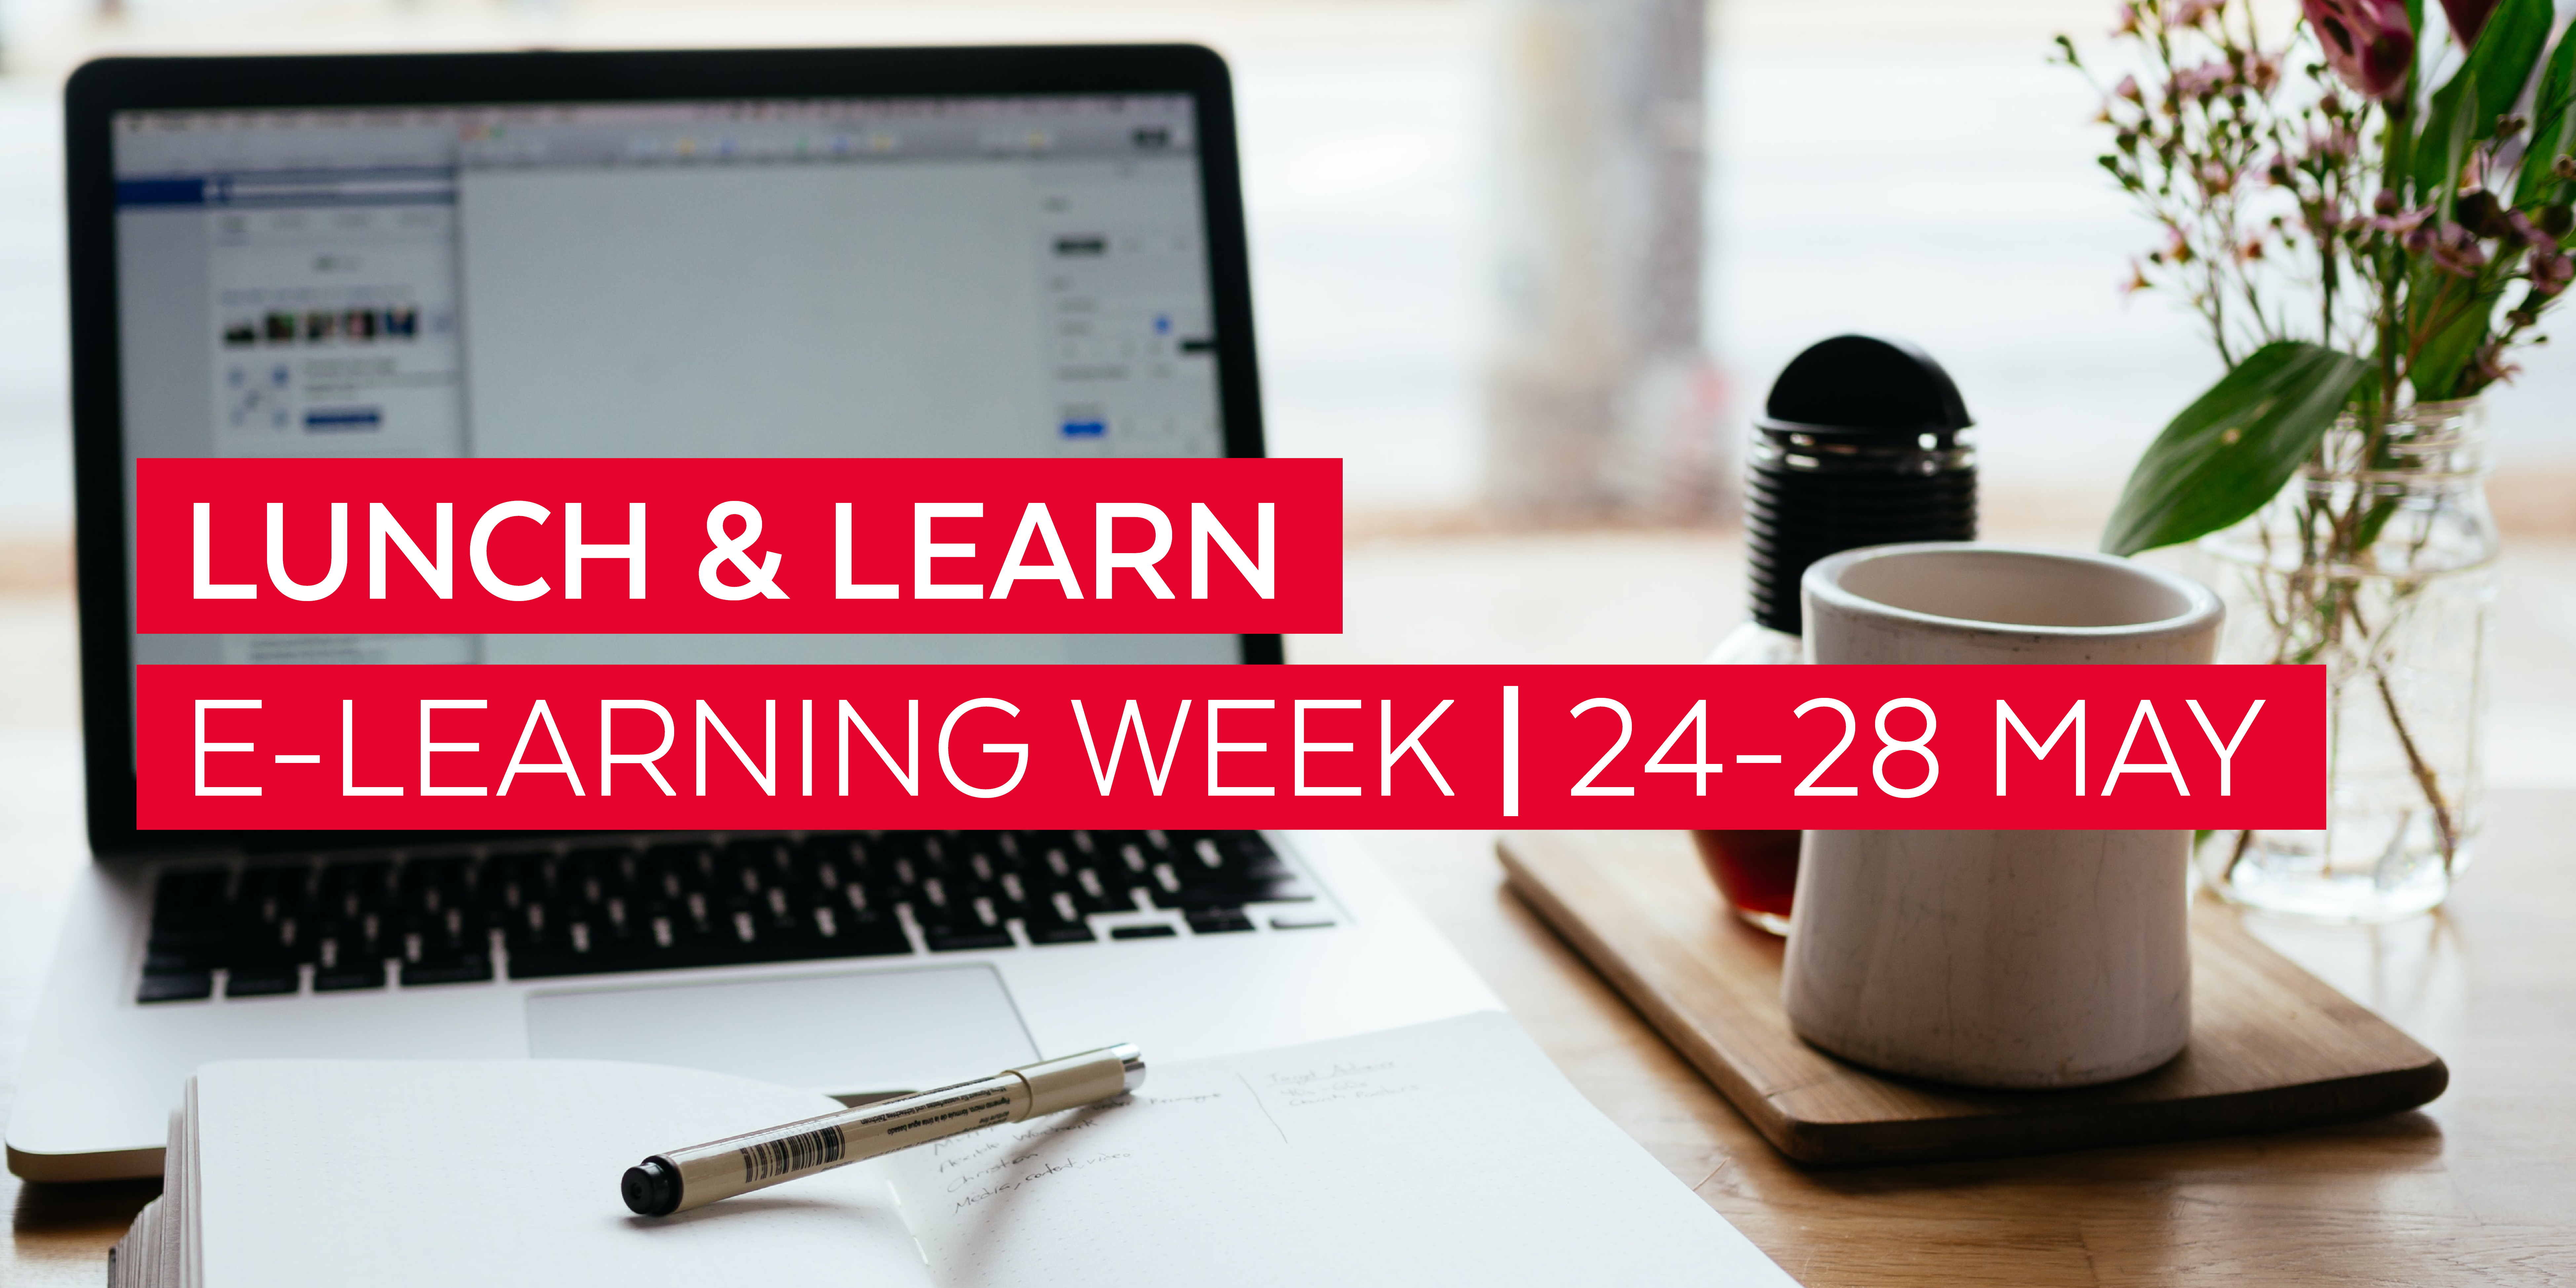 Lunch & Learn e-learning week | 24-28 May with Legal Network | Hugh James